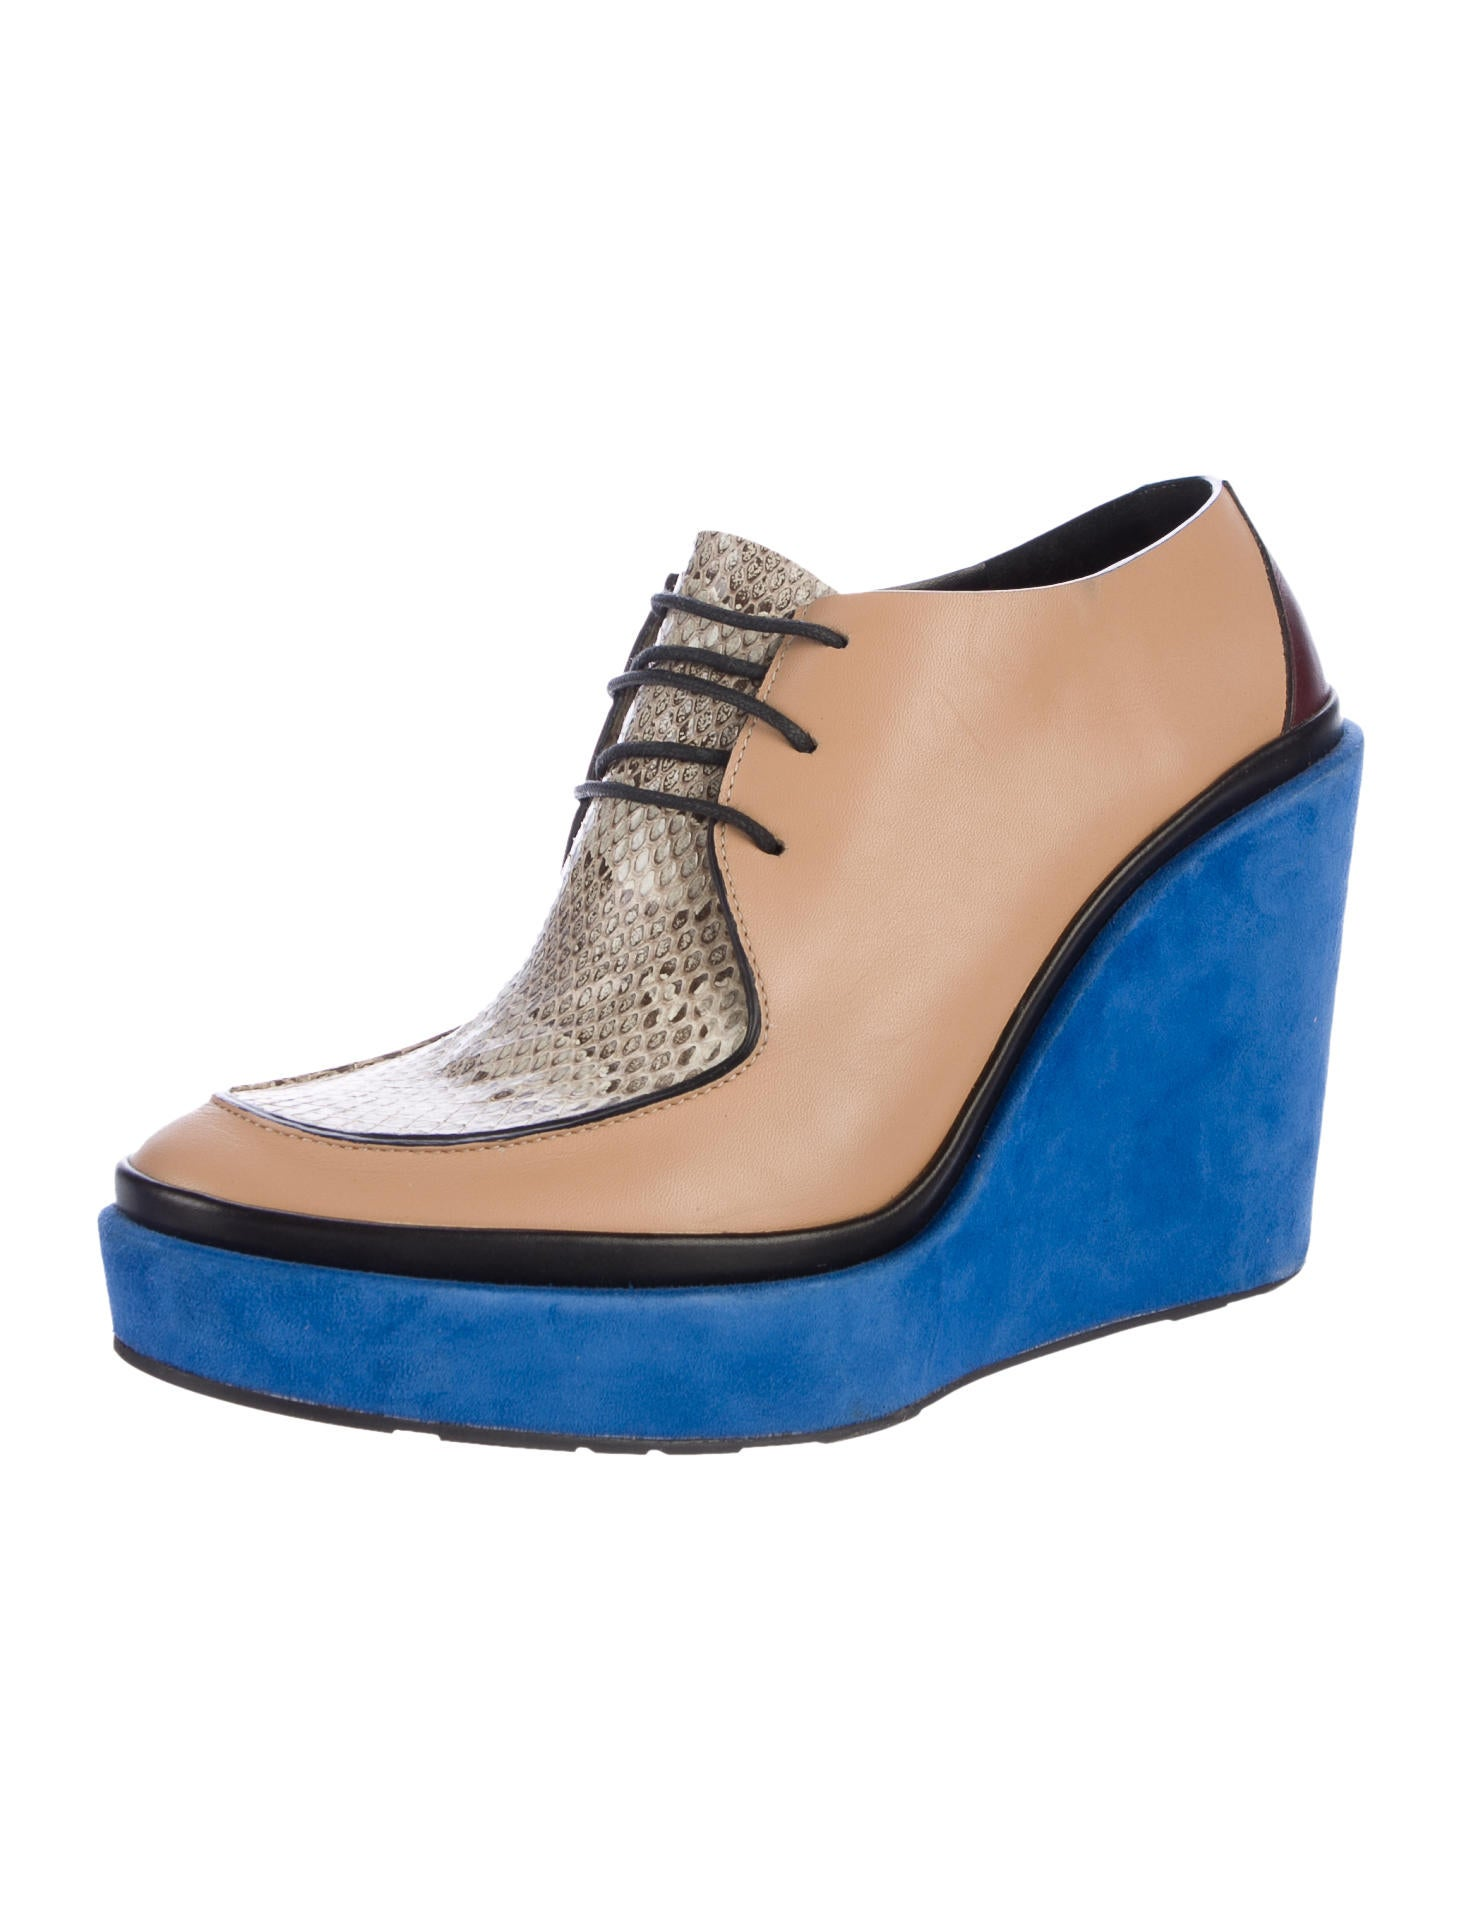 Jil Sander Snakeskin-Trimmed Wedge Booties cheap best discount fast delivery from china low shipping fee for sale wholesale price big discount cheap online Y2QAKi9dhr